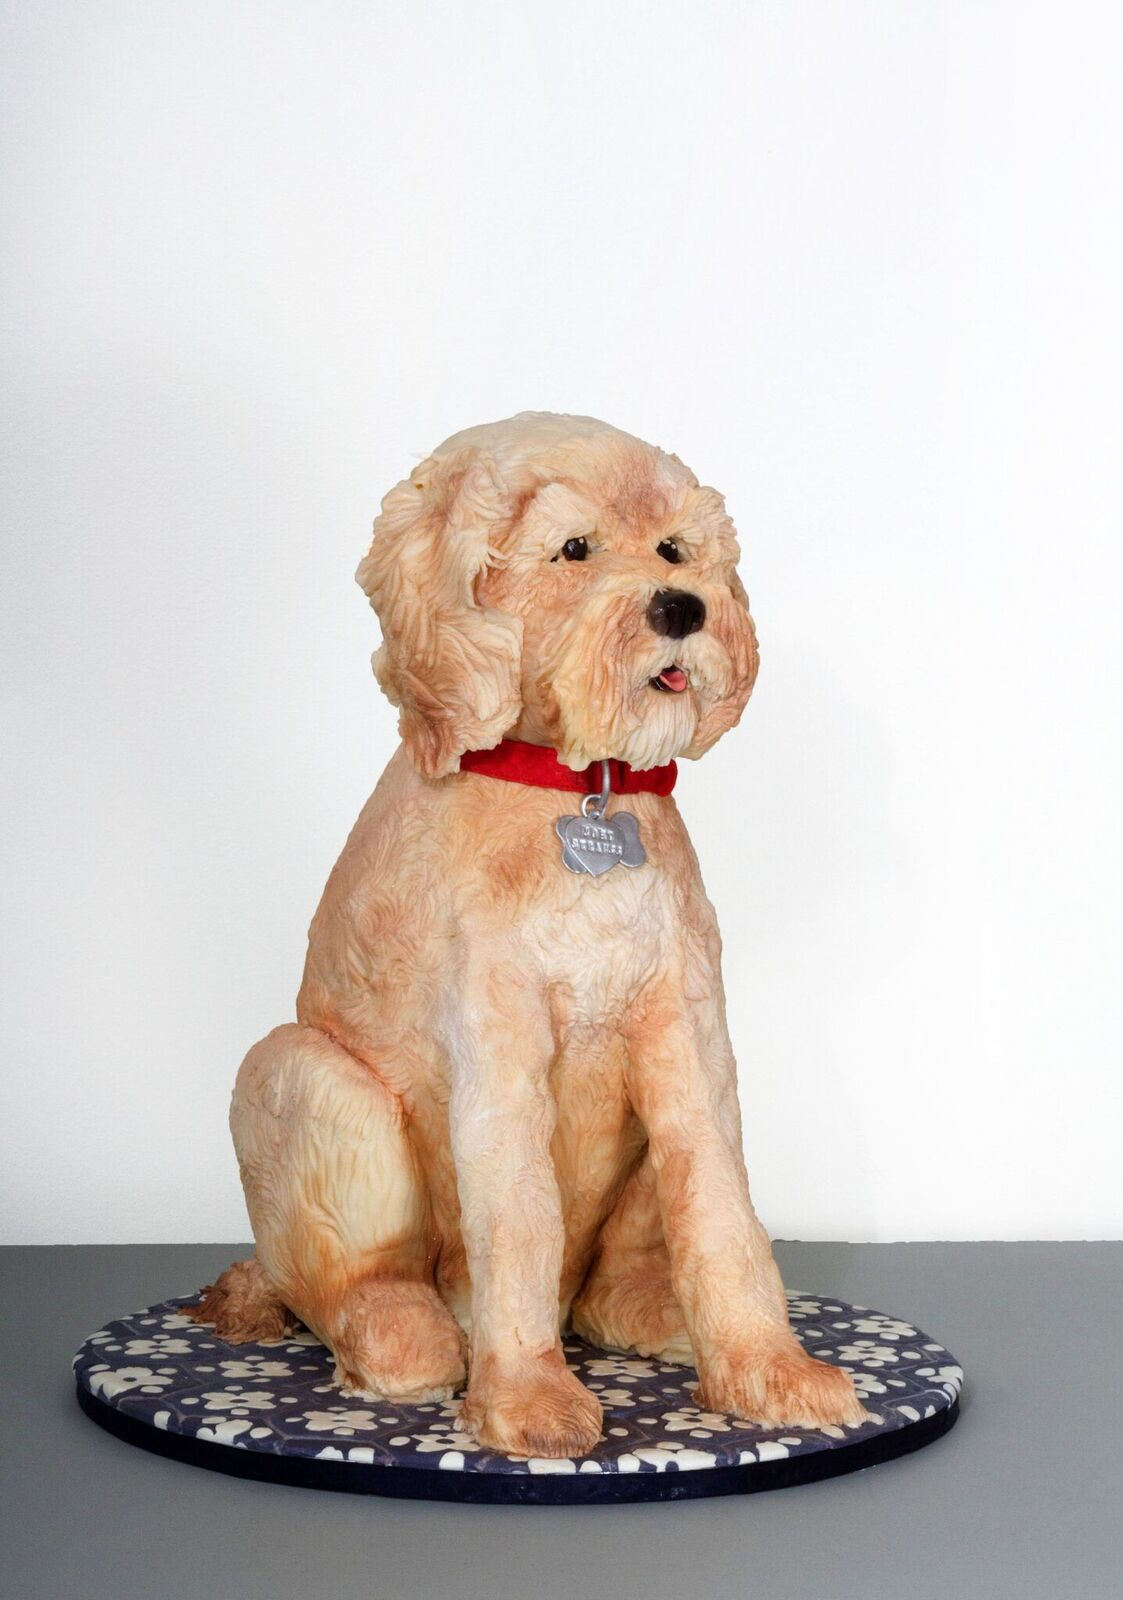 Sculpted fondant dog